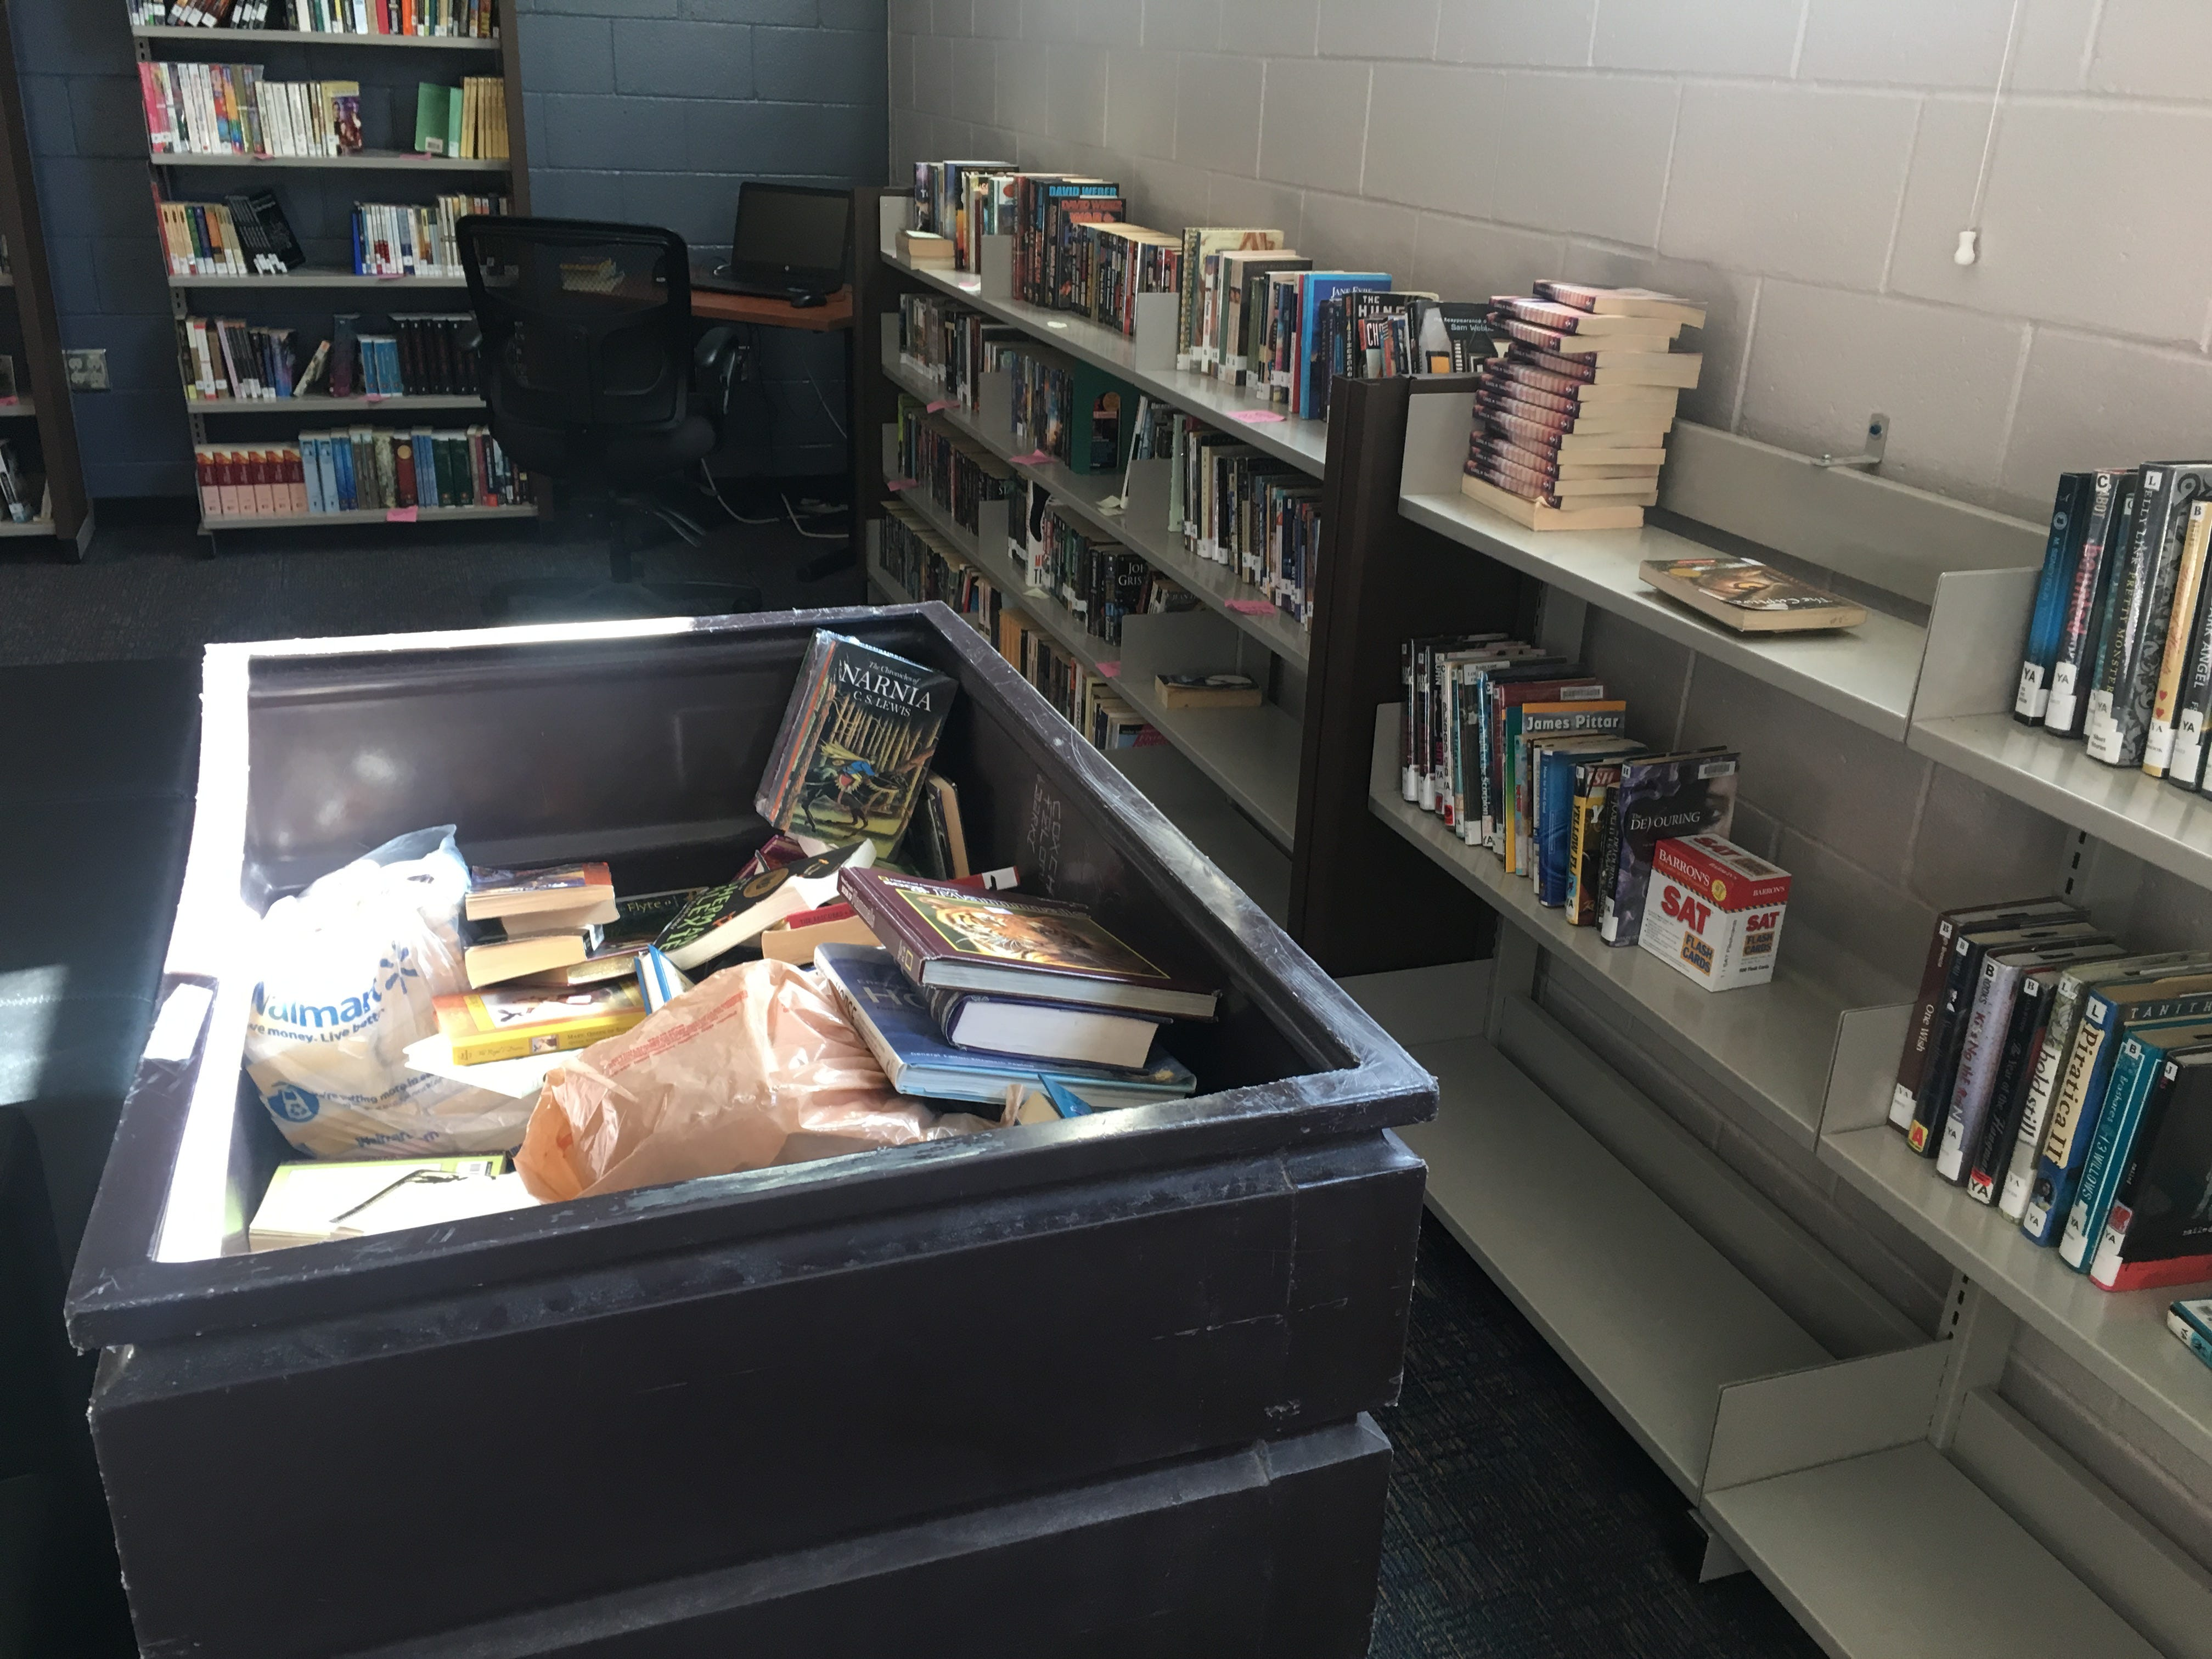 Donated books fill shelves of the library at the Ventura County Juvenile Hall facility in El Rio.